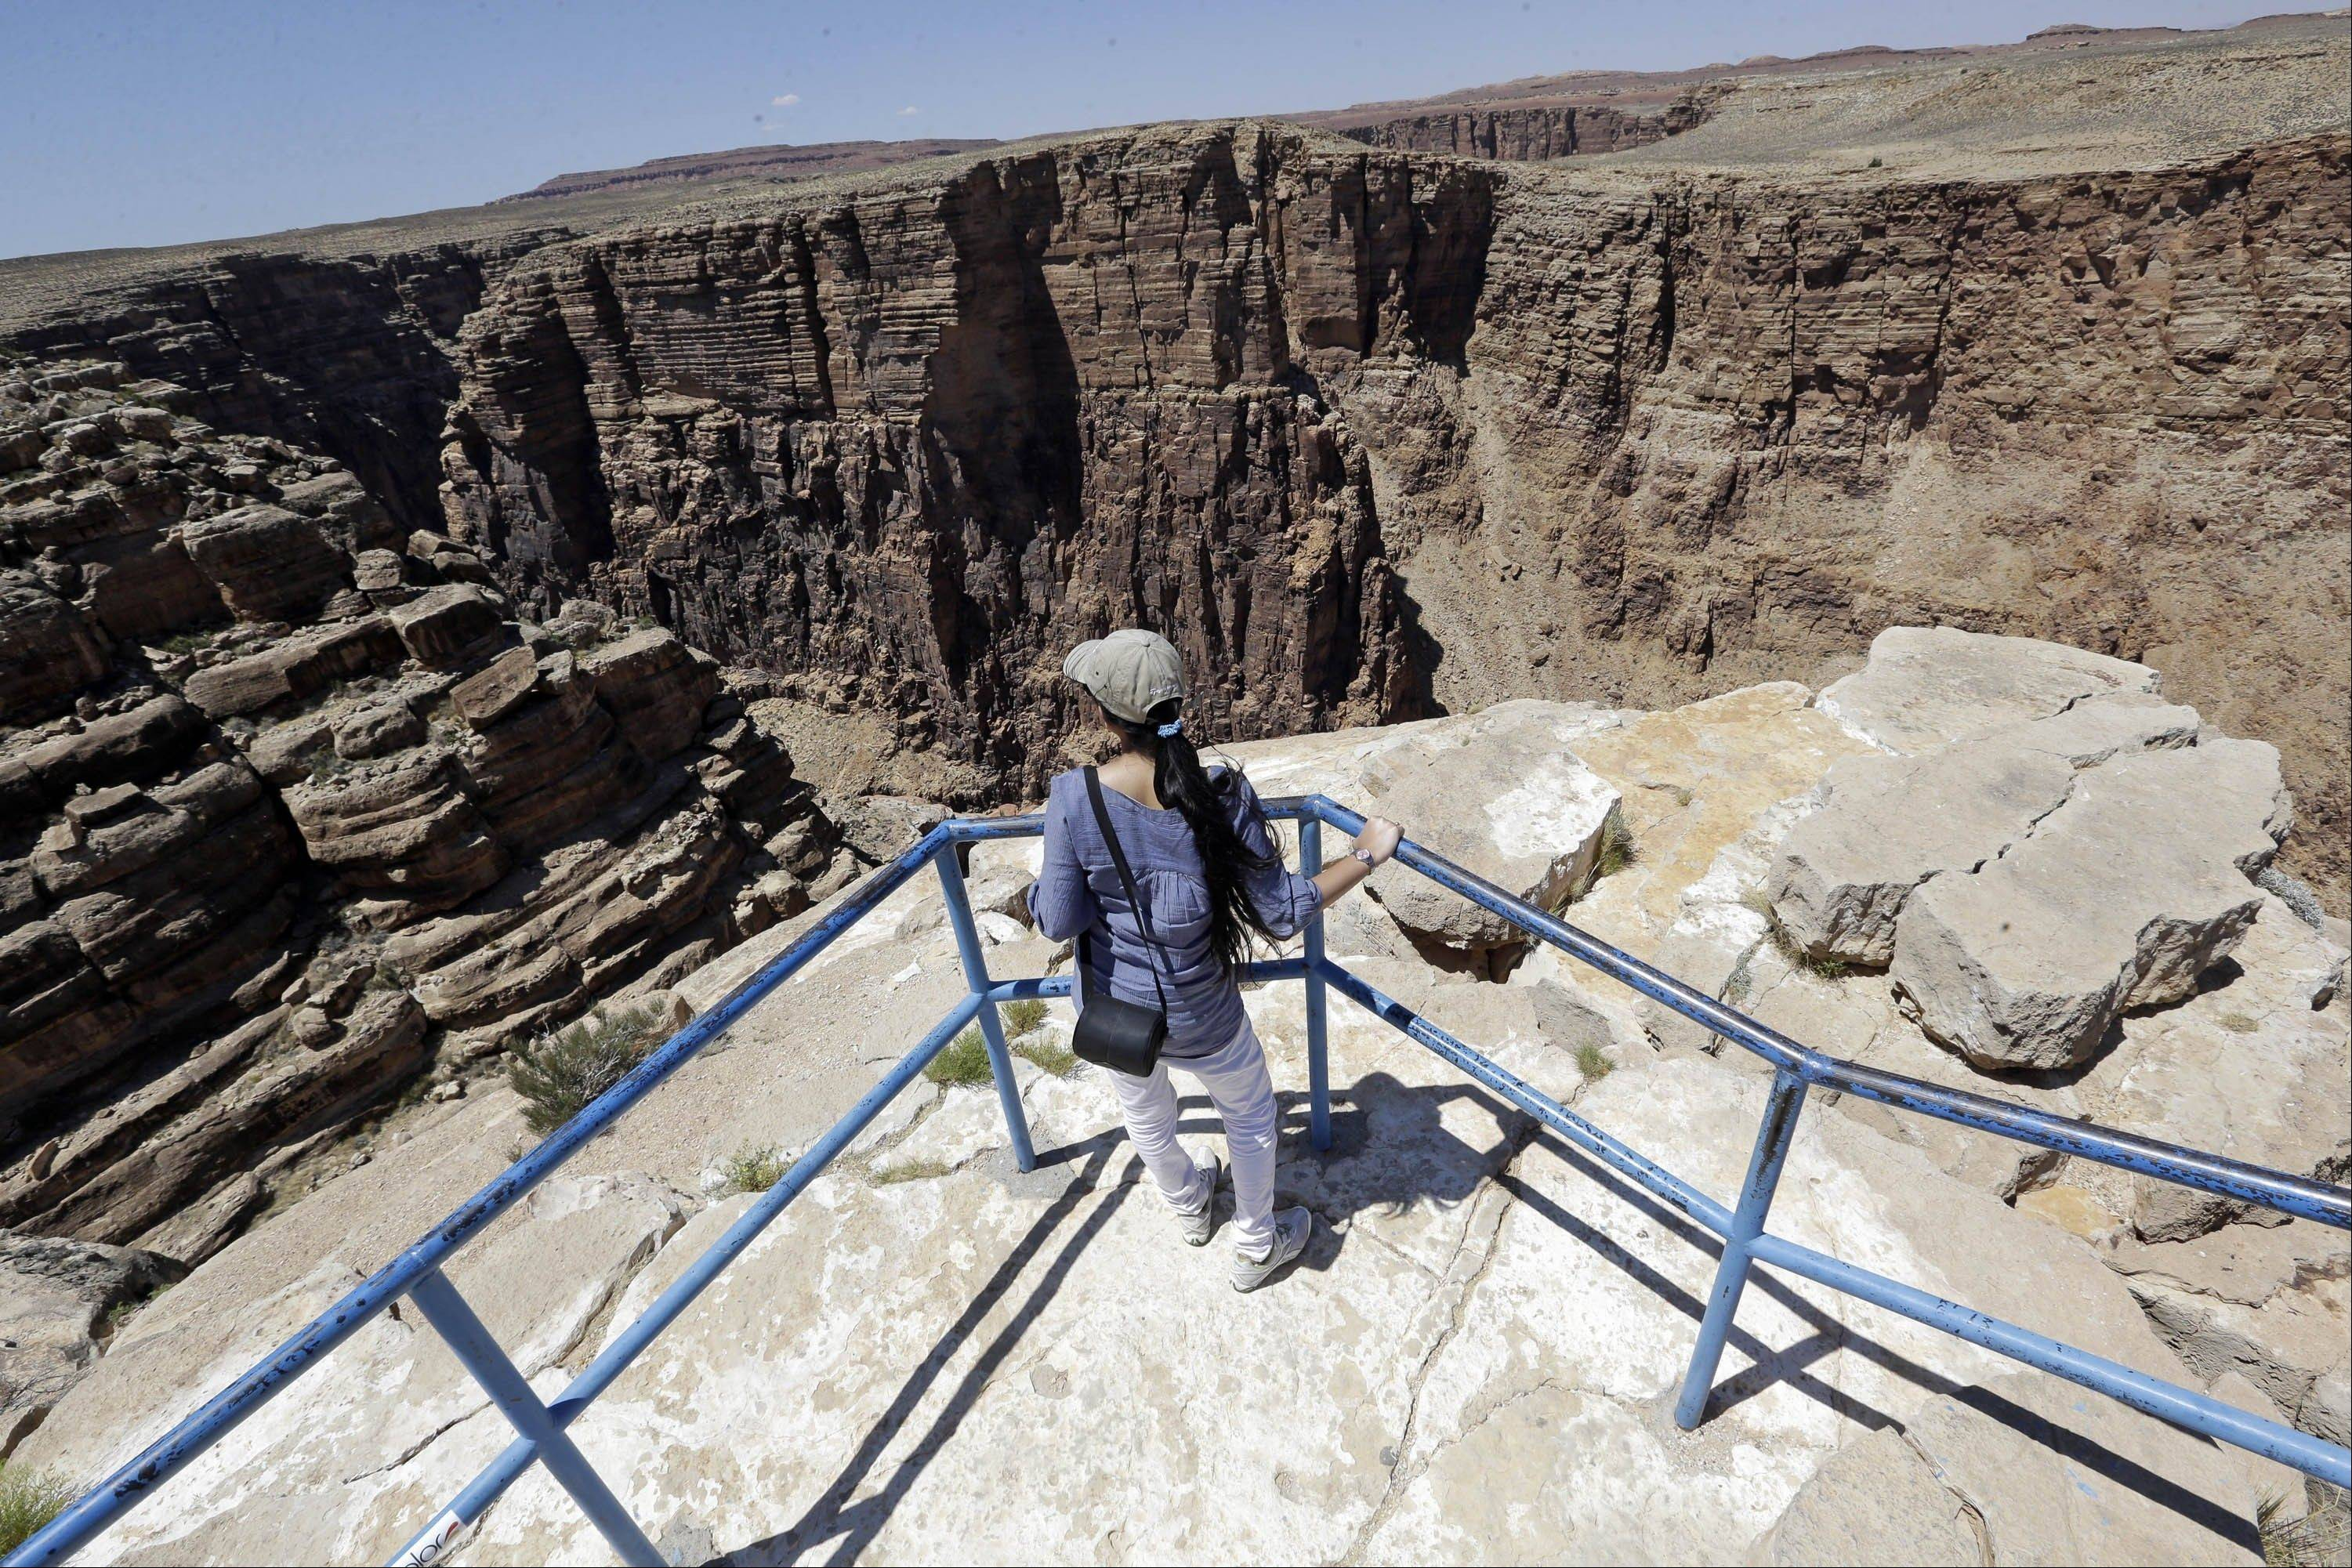 A tourist looks over the Little Colorado River Gorge Saturday on the Navajo reservation near Cameron, Ariz. The site is outside the boundaries of Grand Canyon National Park, near where Nik Wallenda, the Florida-based daredevil, will bid to walk on a tightrope stretched across the Little Colorado River Gorge.